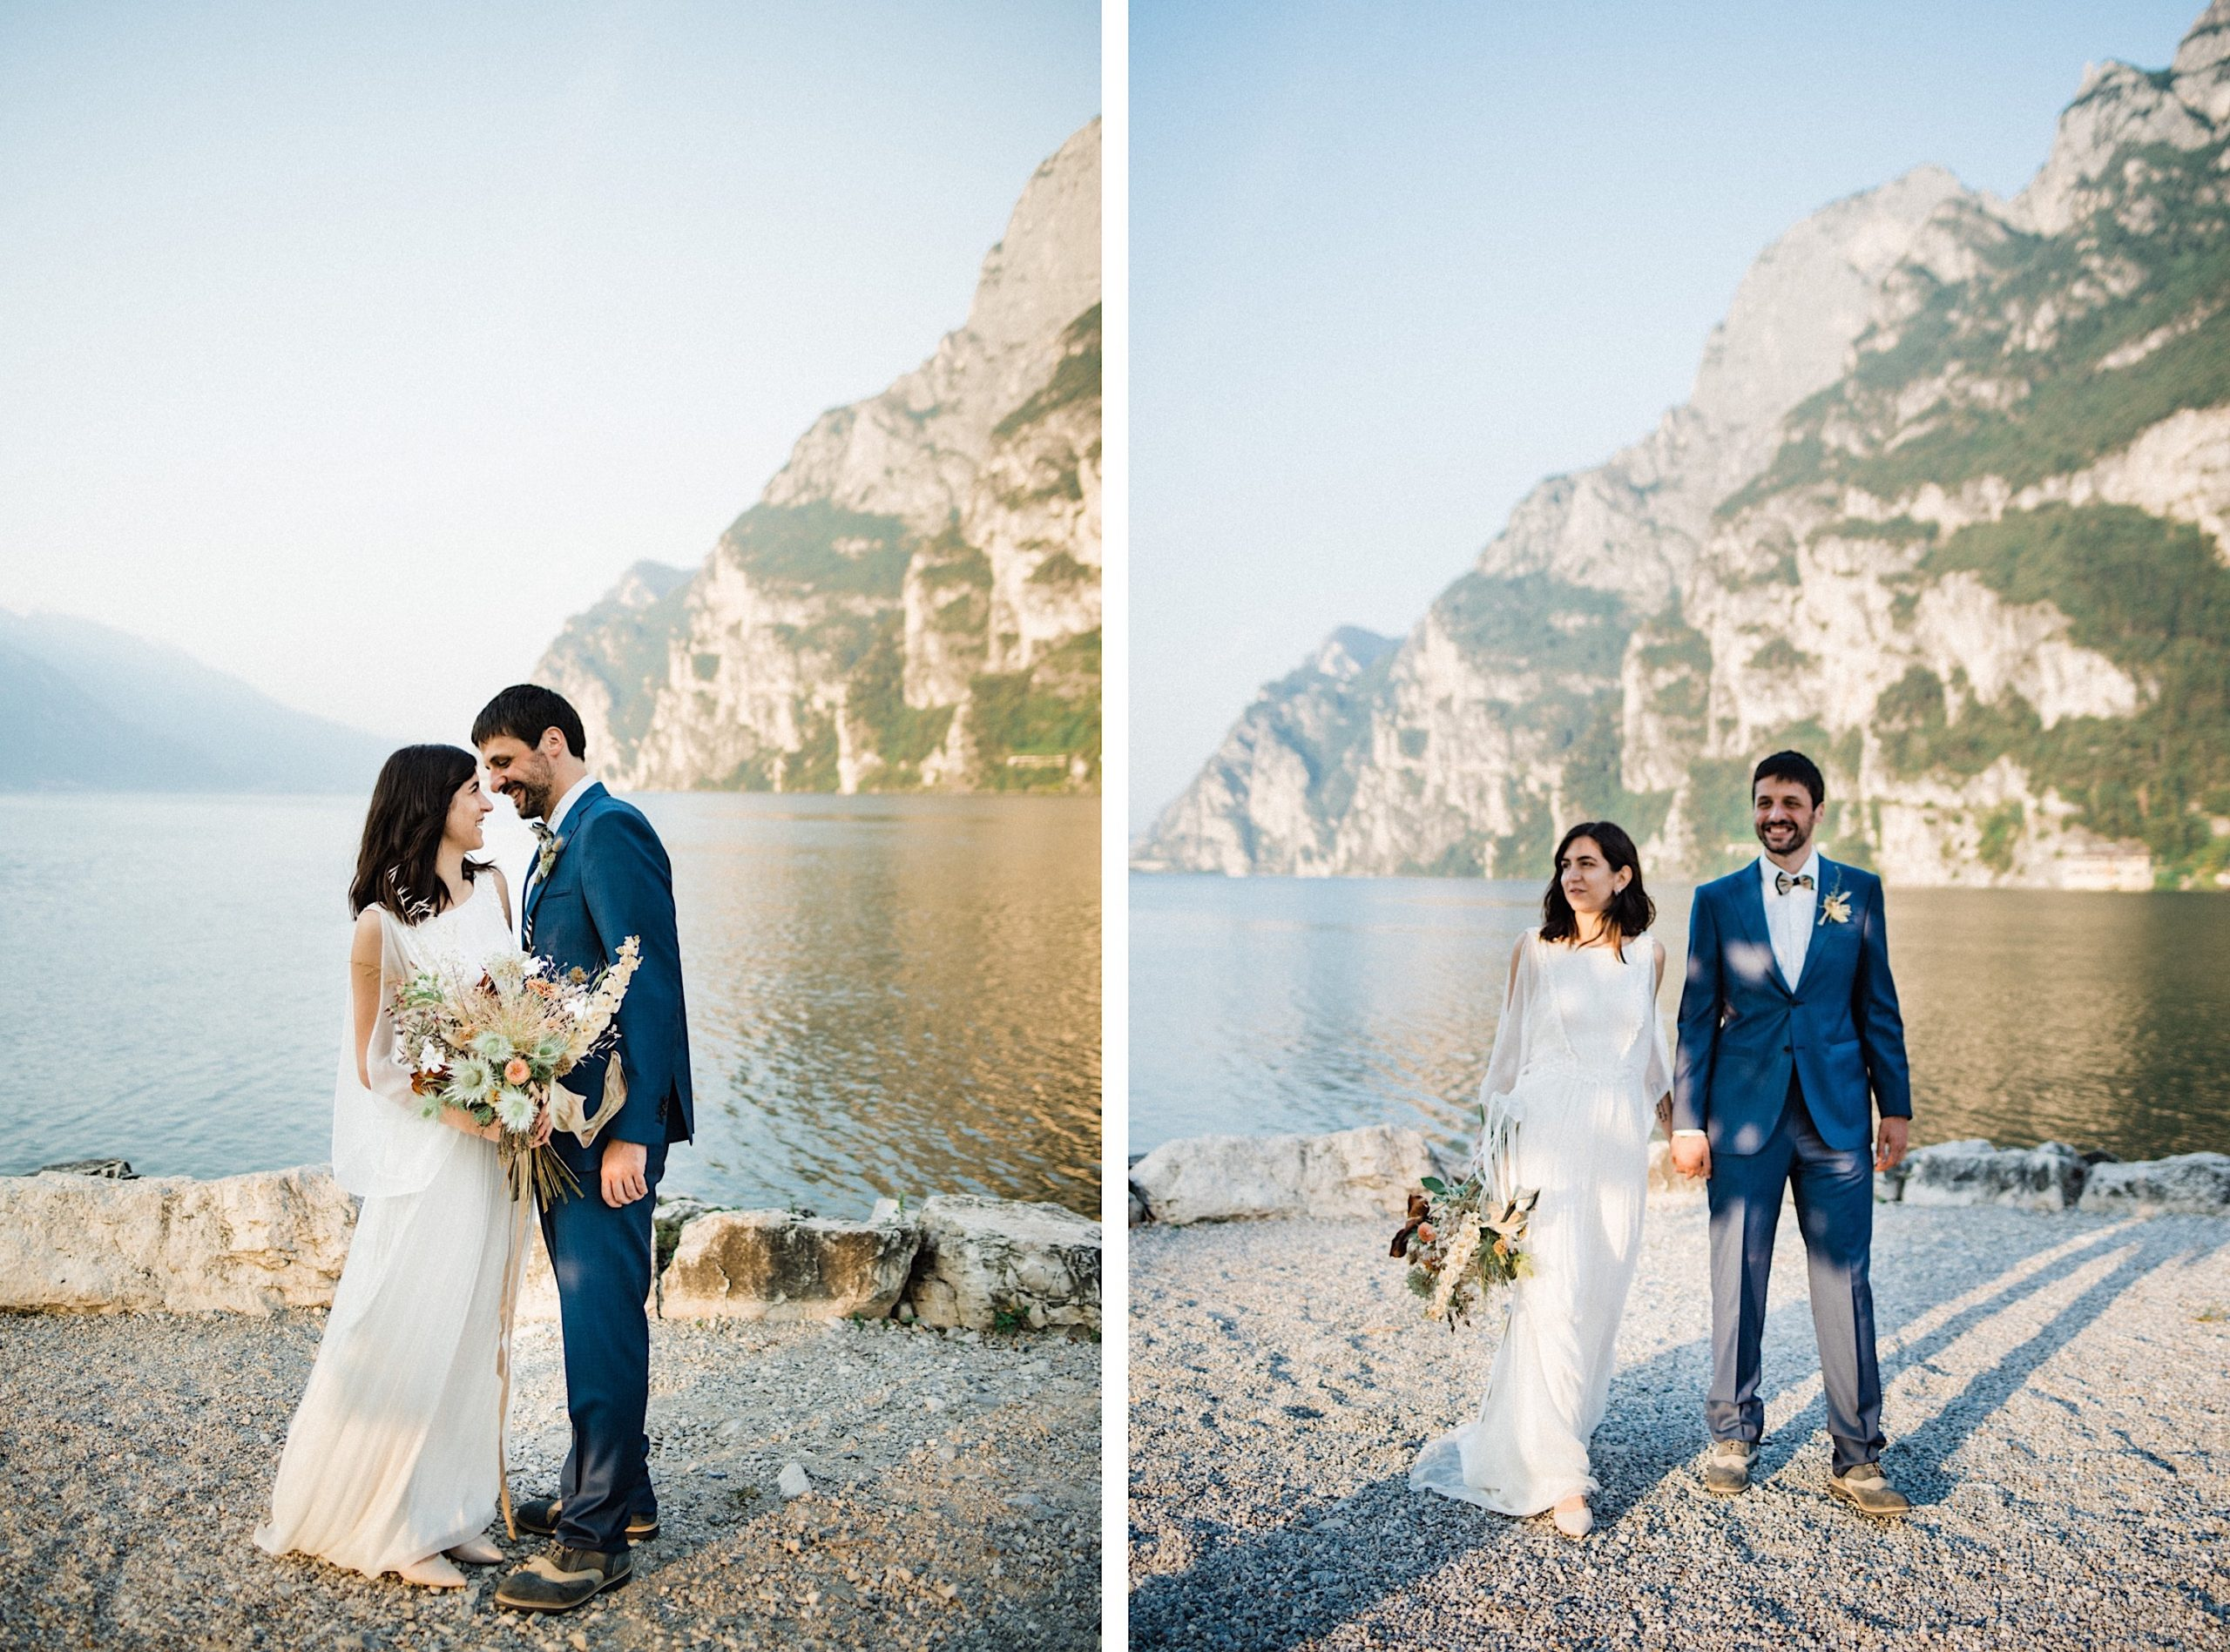 Two portraits by an Italian Elopement Photographer, side-by-side, of a couple in front of Lake Garda walking and smiling on their elopement day.